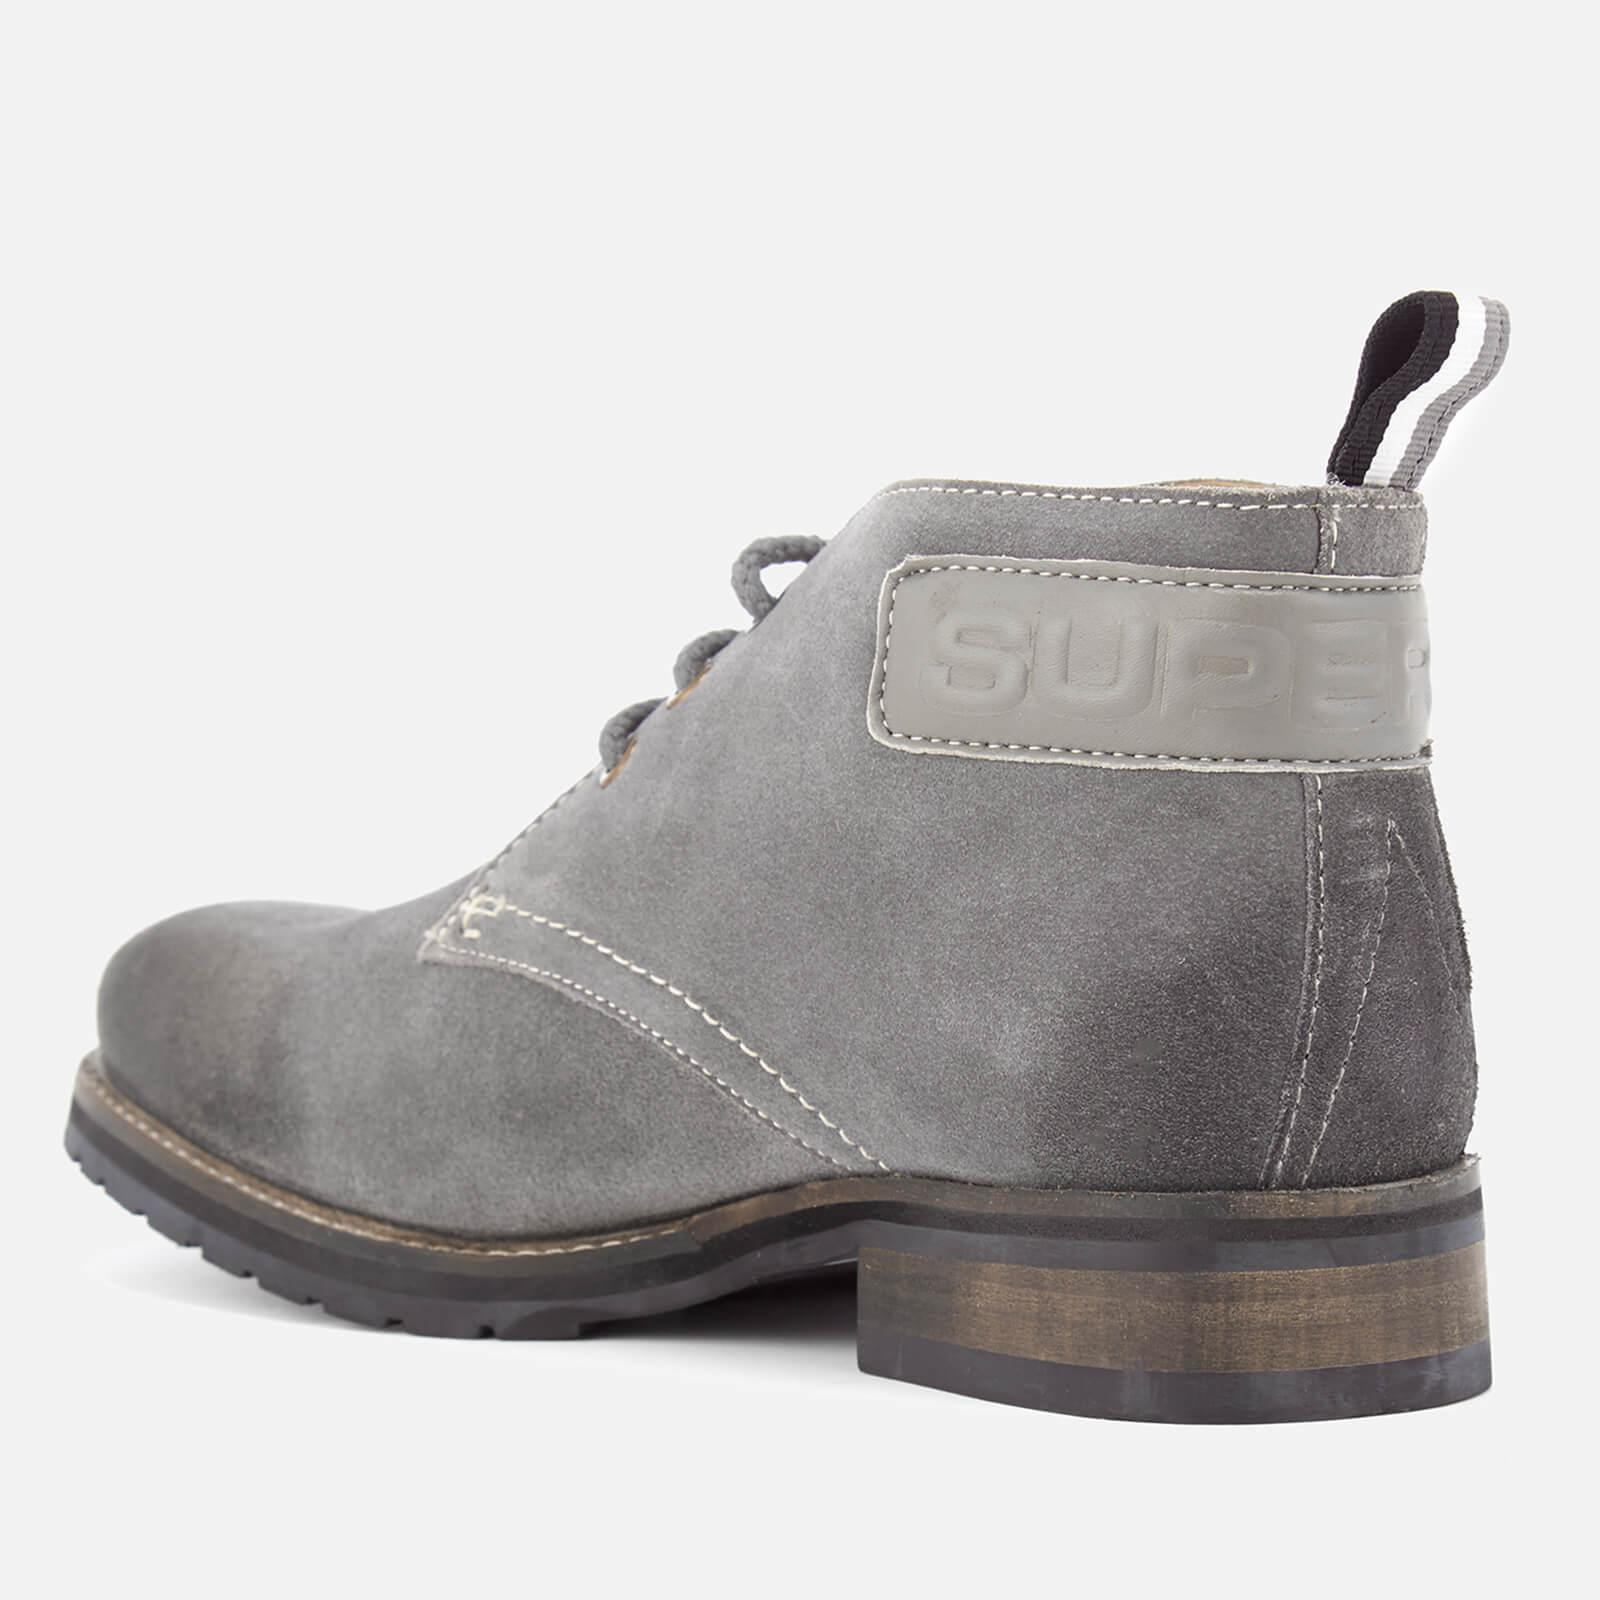 Superdry Suede Ryan Desert Boots in